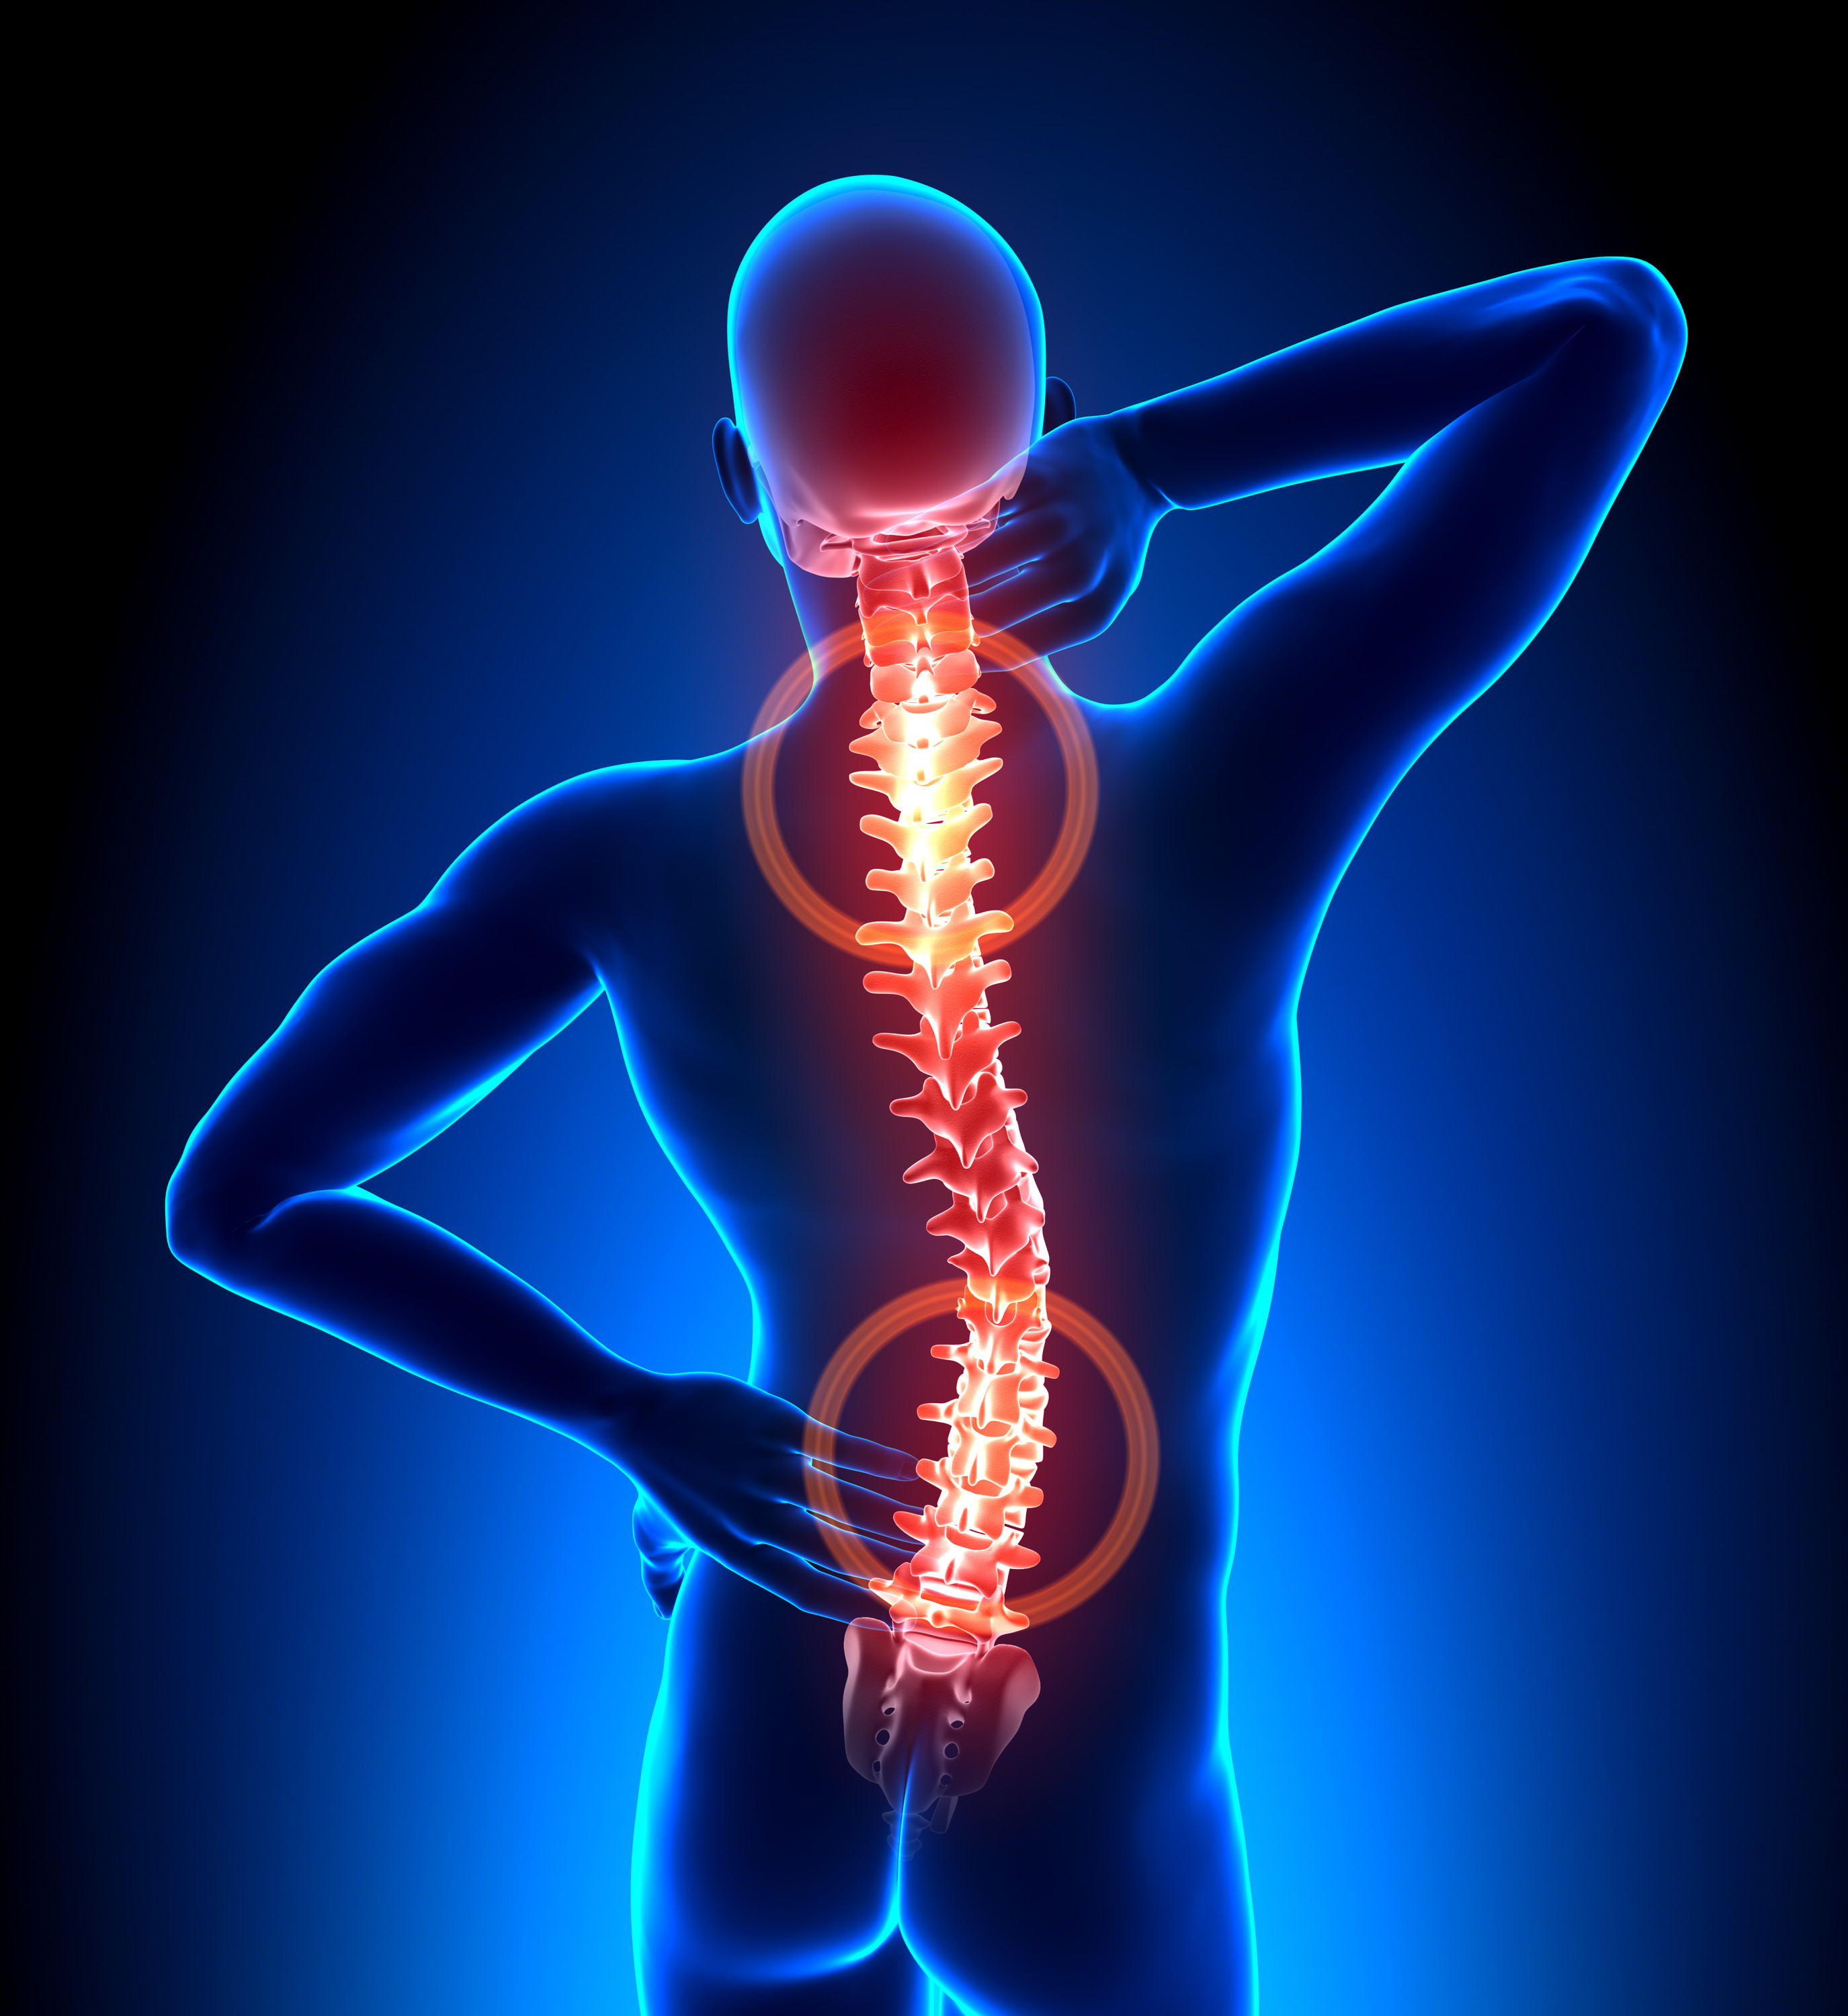 Spinal Stenosis and Stem Cell Therapy. Emerging Treatments for Spine Health